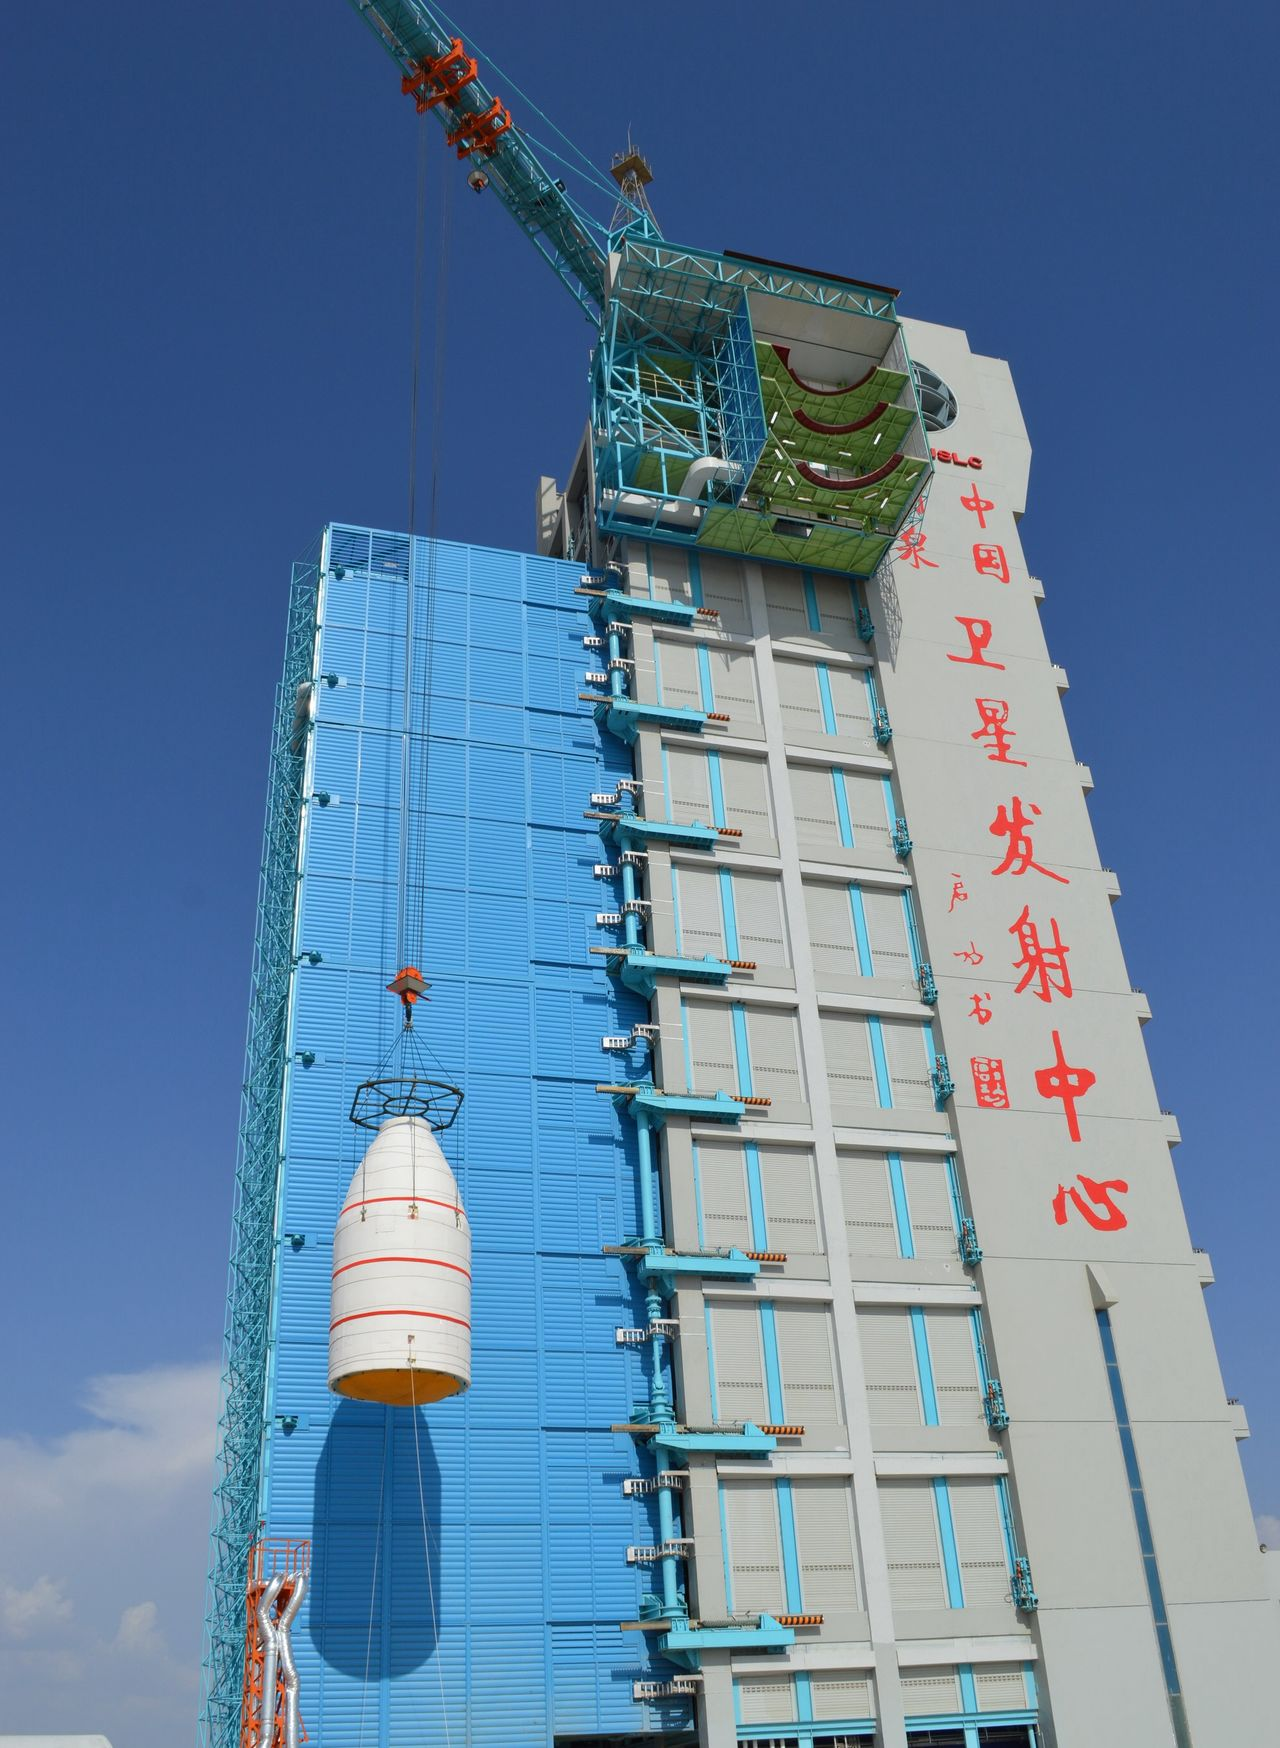 The Mozi satellite is prepared for launch at the Jiuquan Satellite Launch Center in Jiuquan, Gansu Province, in August 2016. (Photo courtesy Xinhua/Aflo)